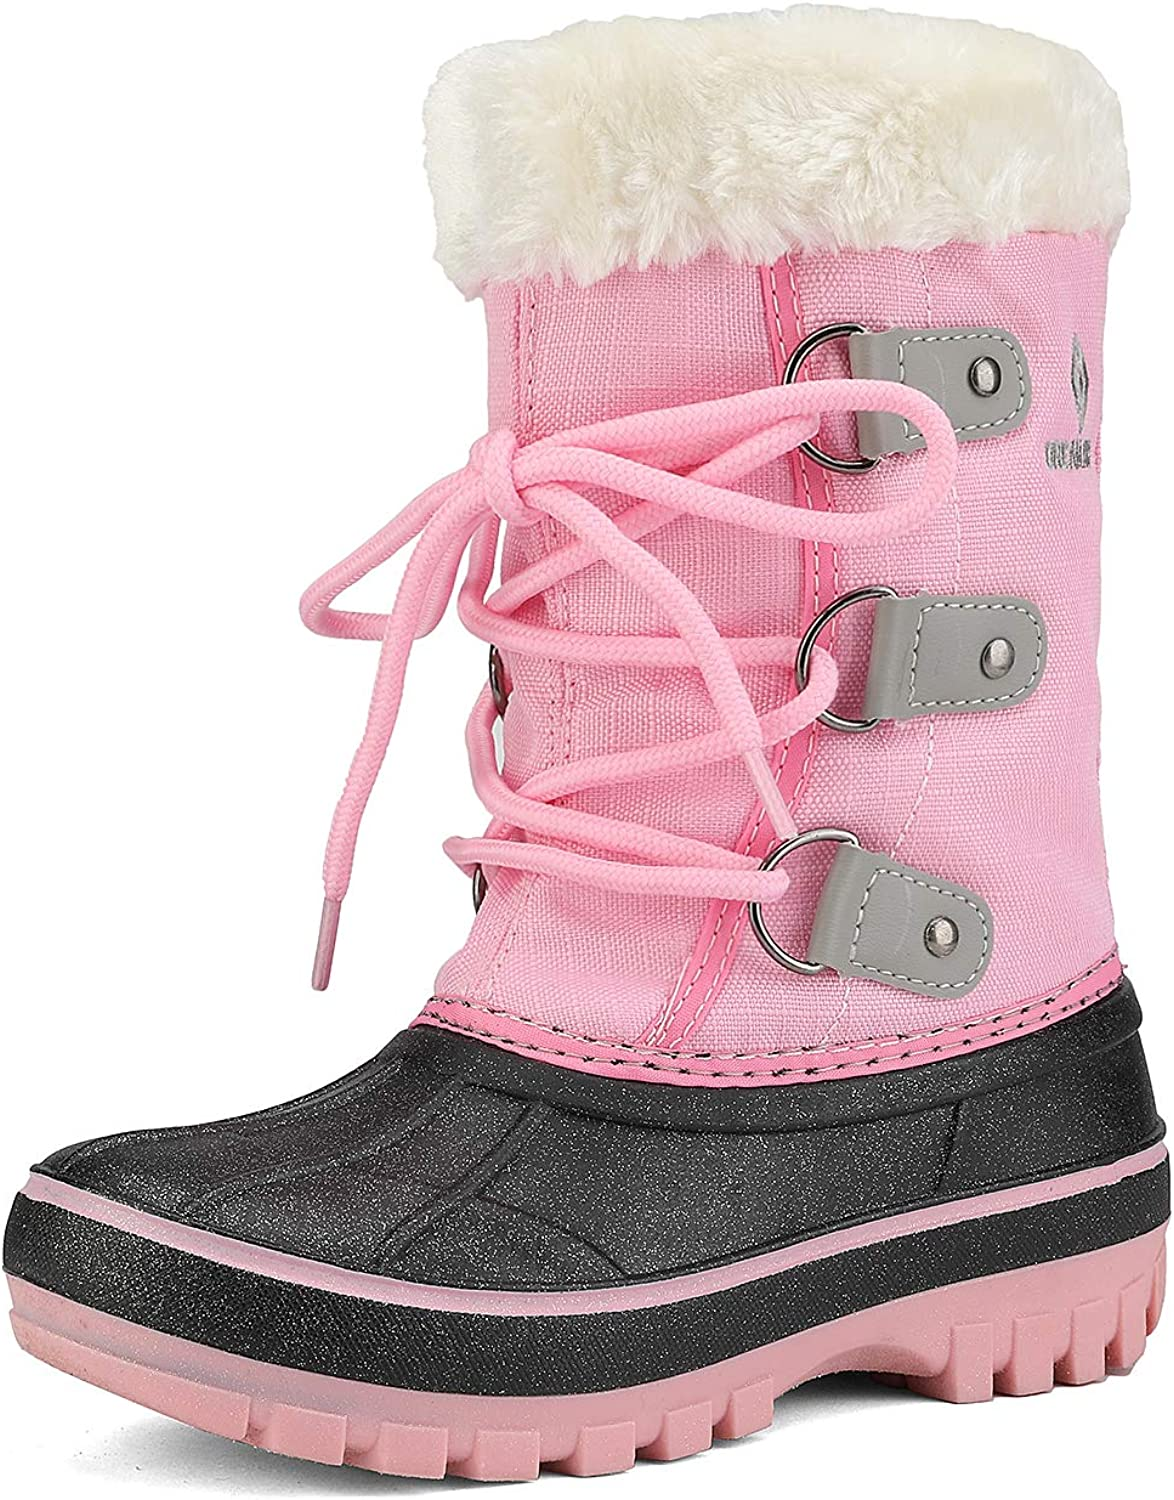 DREAM PAIRS Boys /& Girls Toddler//Little Kid//Big Kid Faux Fur-Lined Winter Snow Boots